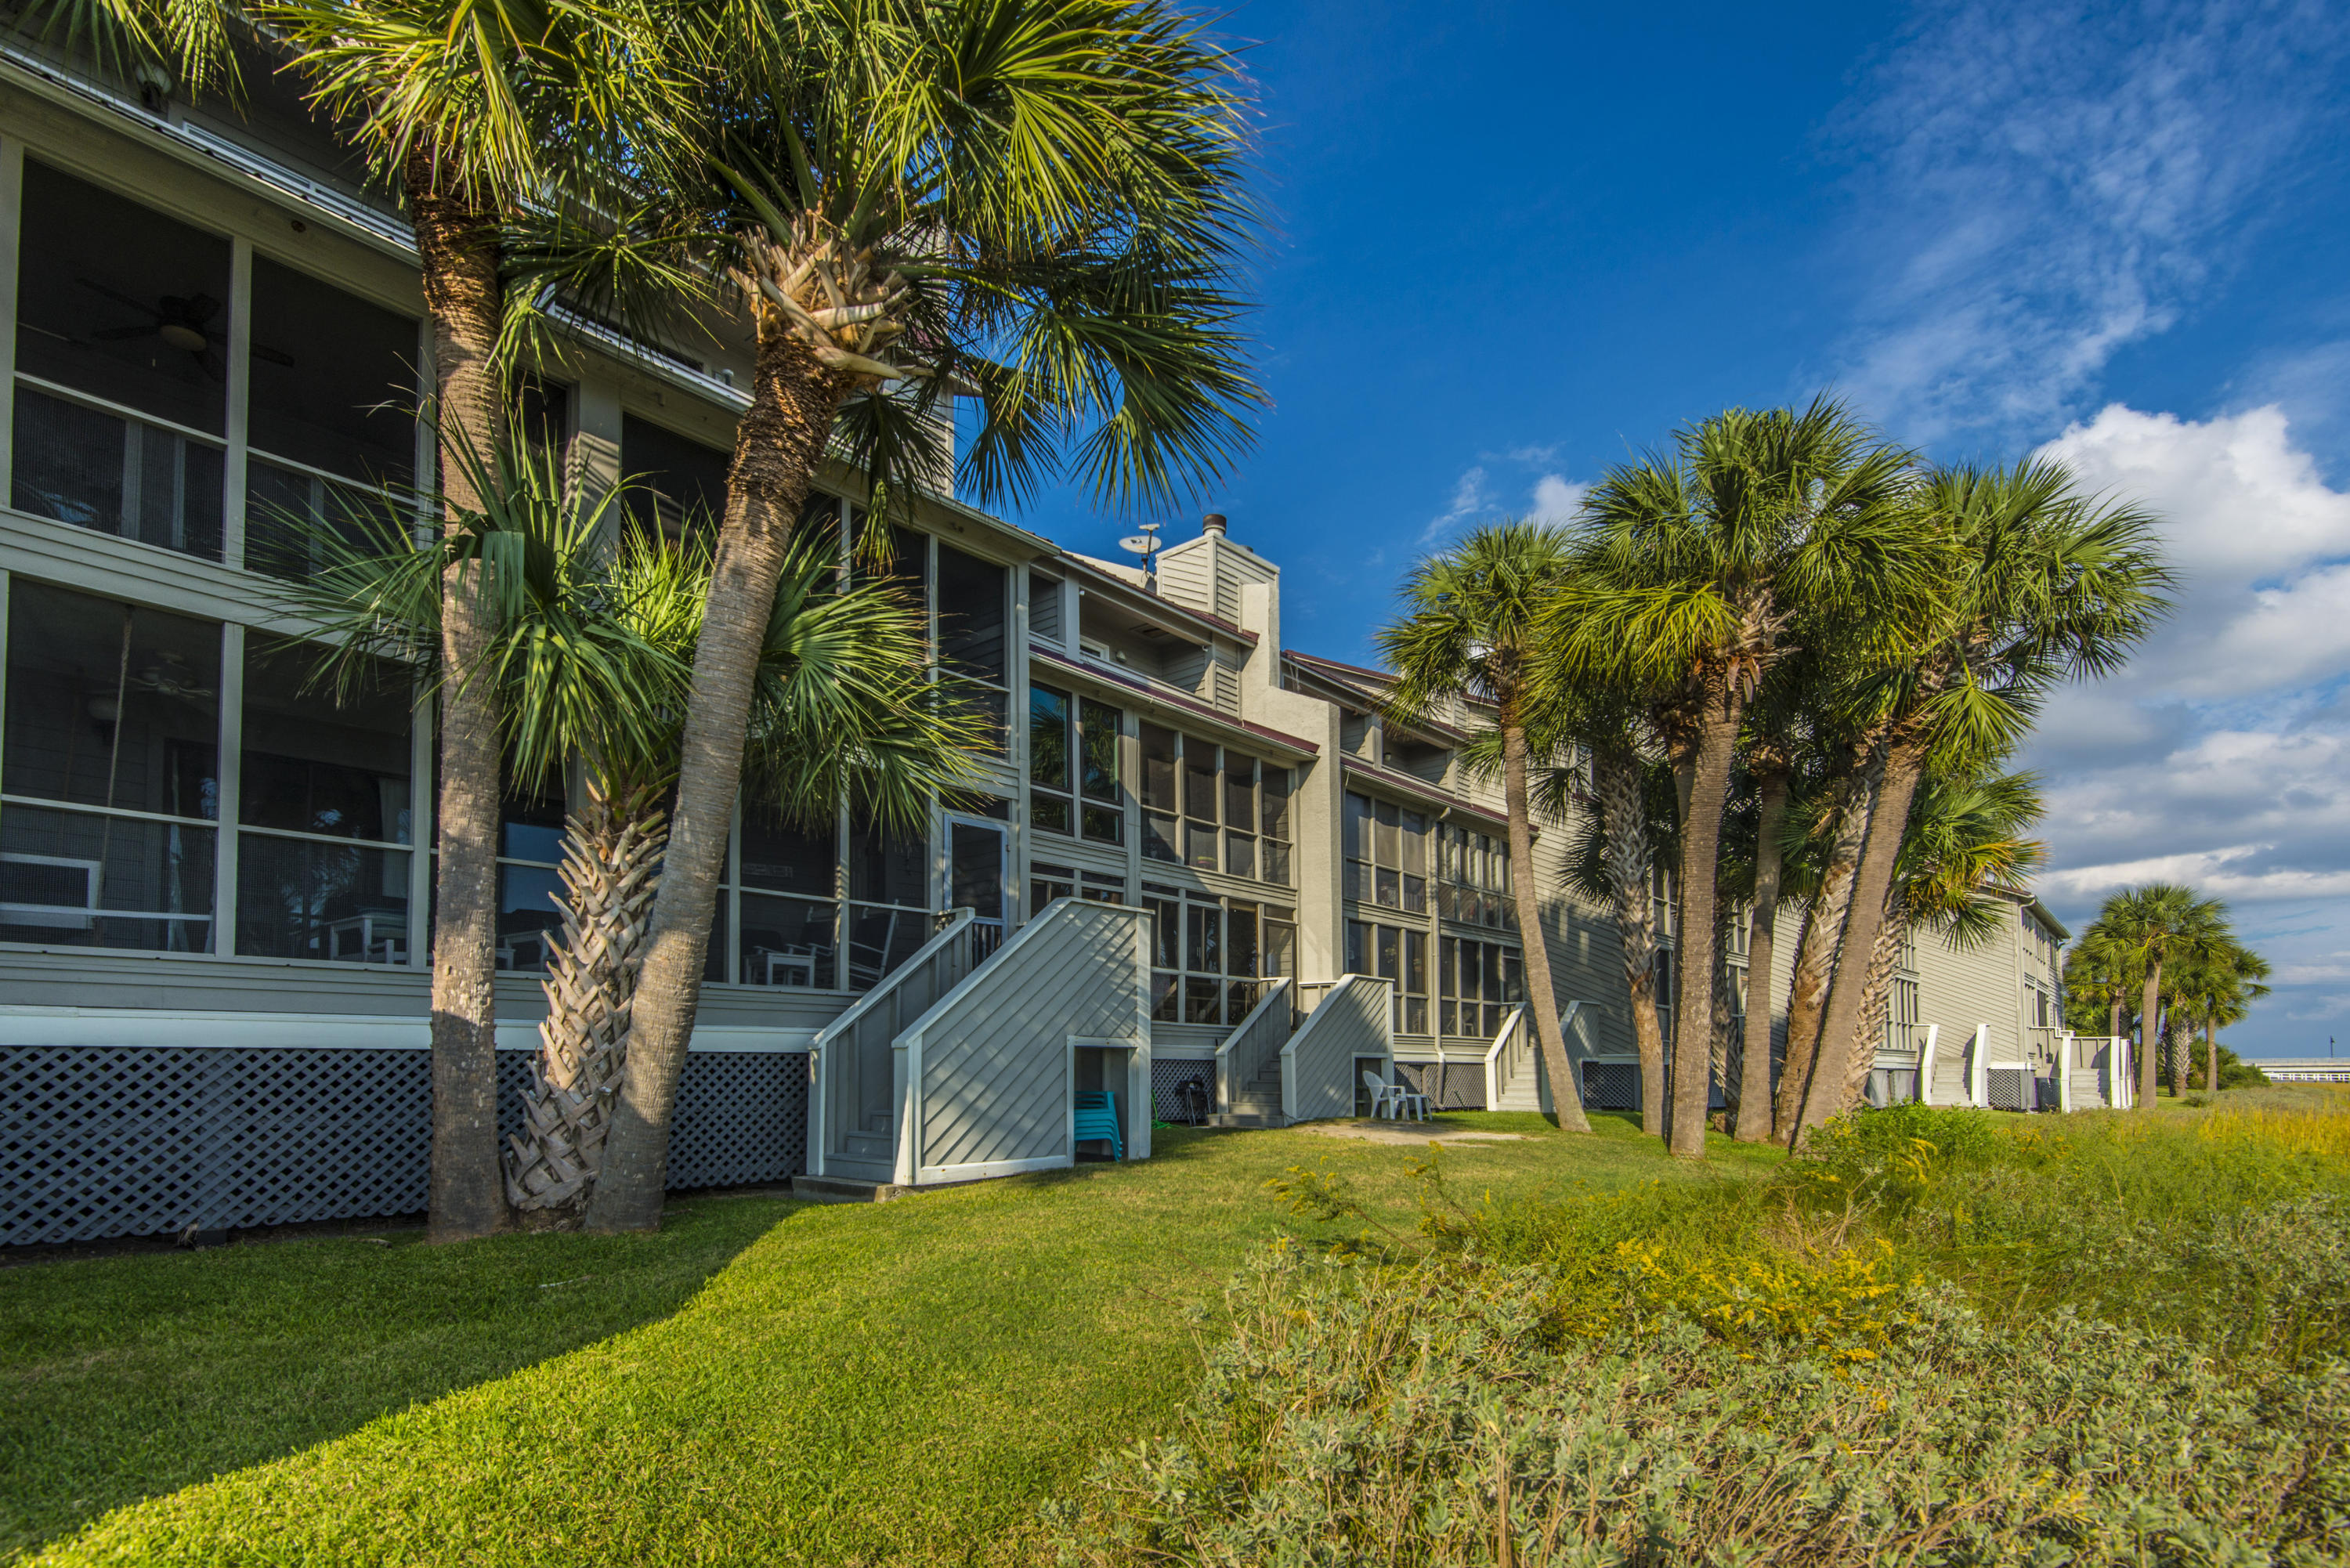 Mariners Cay Homes For Sale - 42 Mariners Cay, Folly Beach, SC - 28